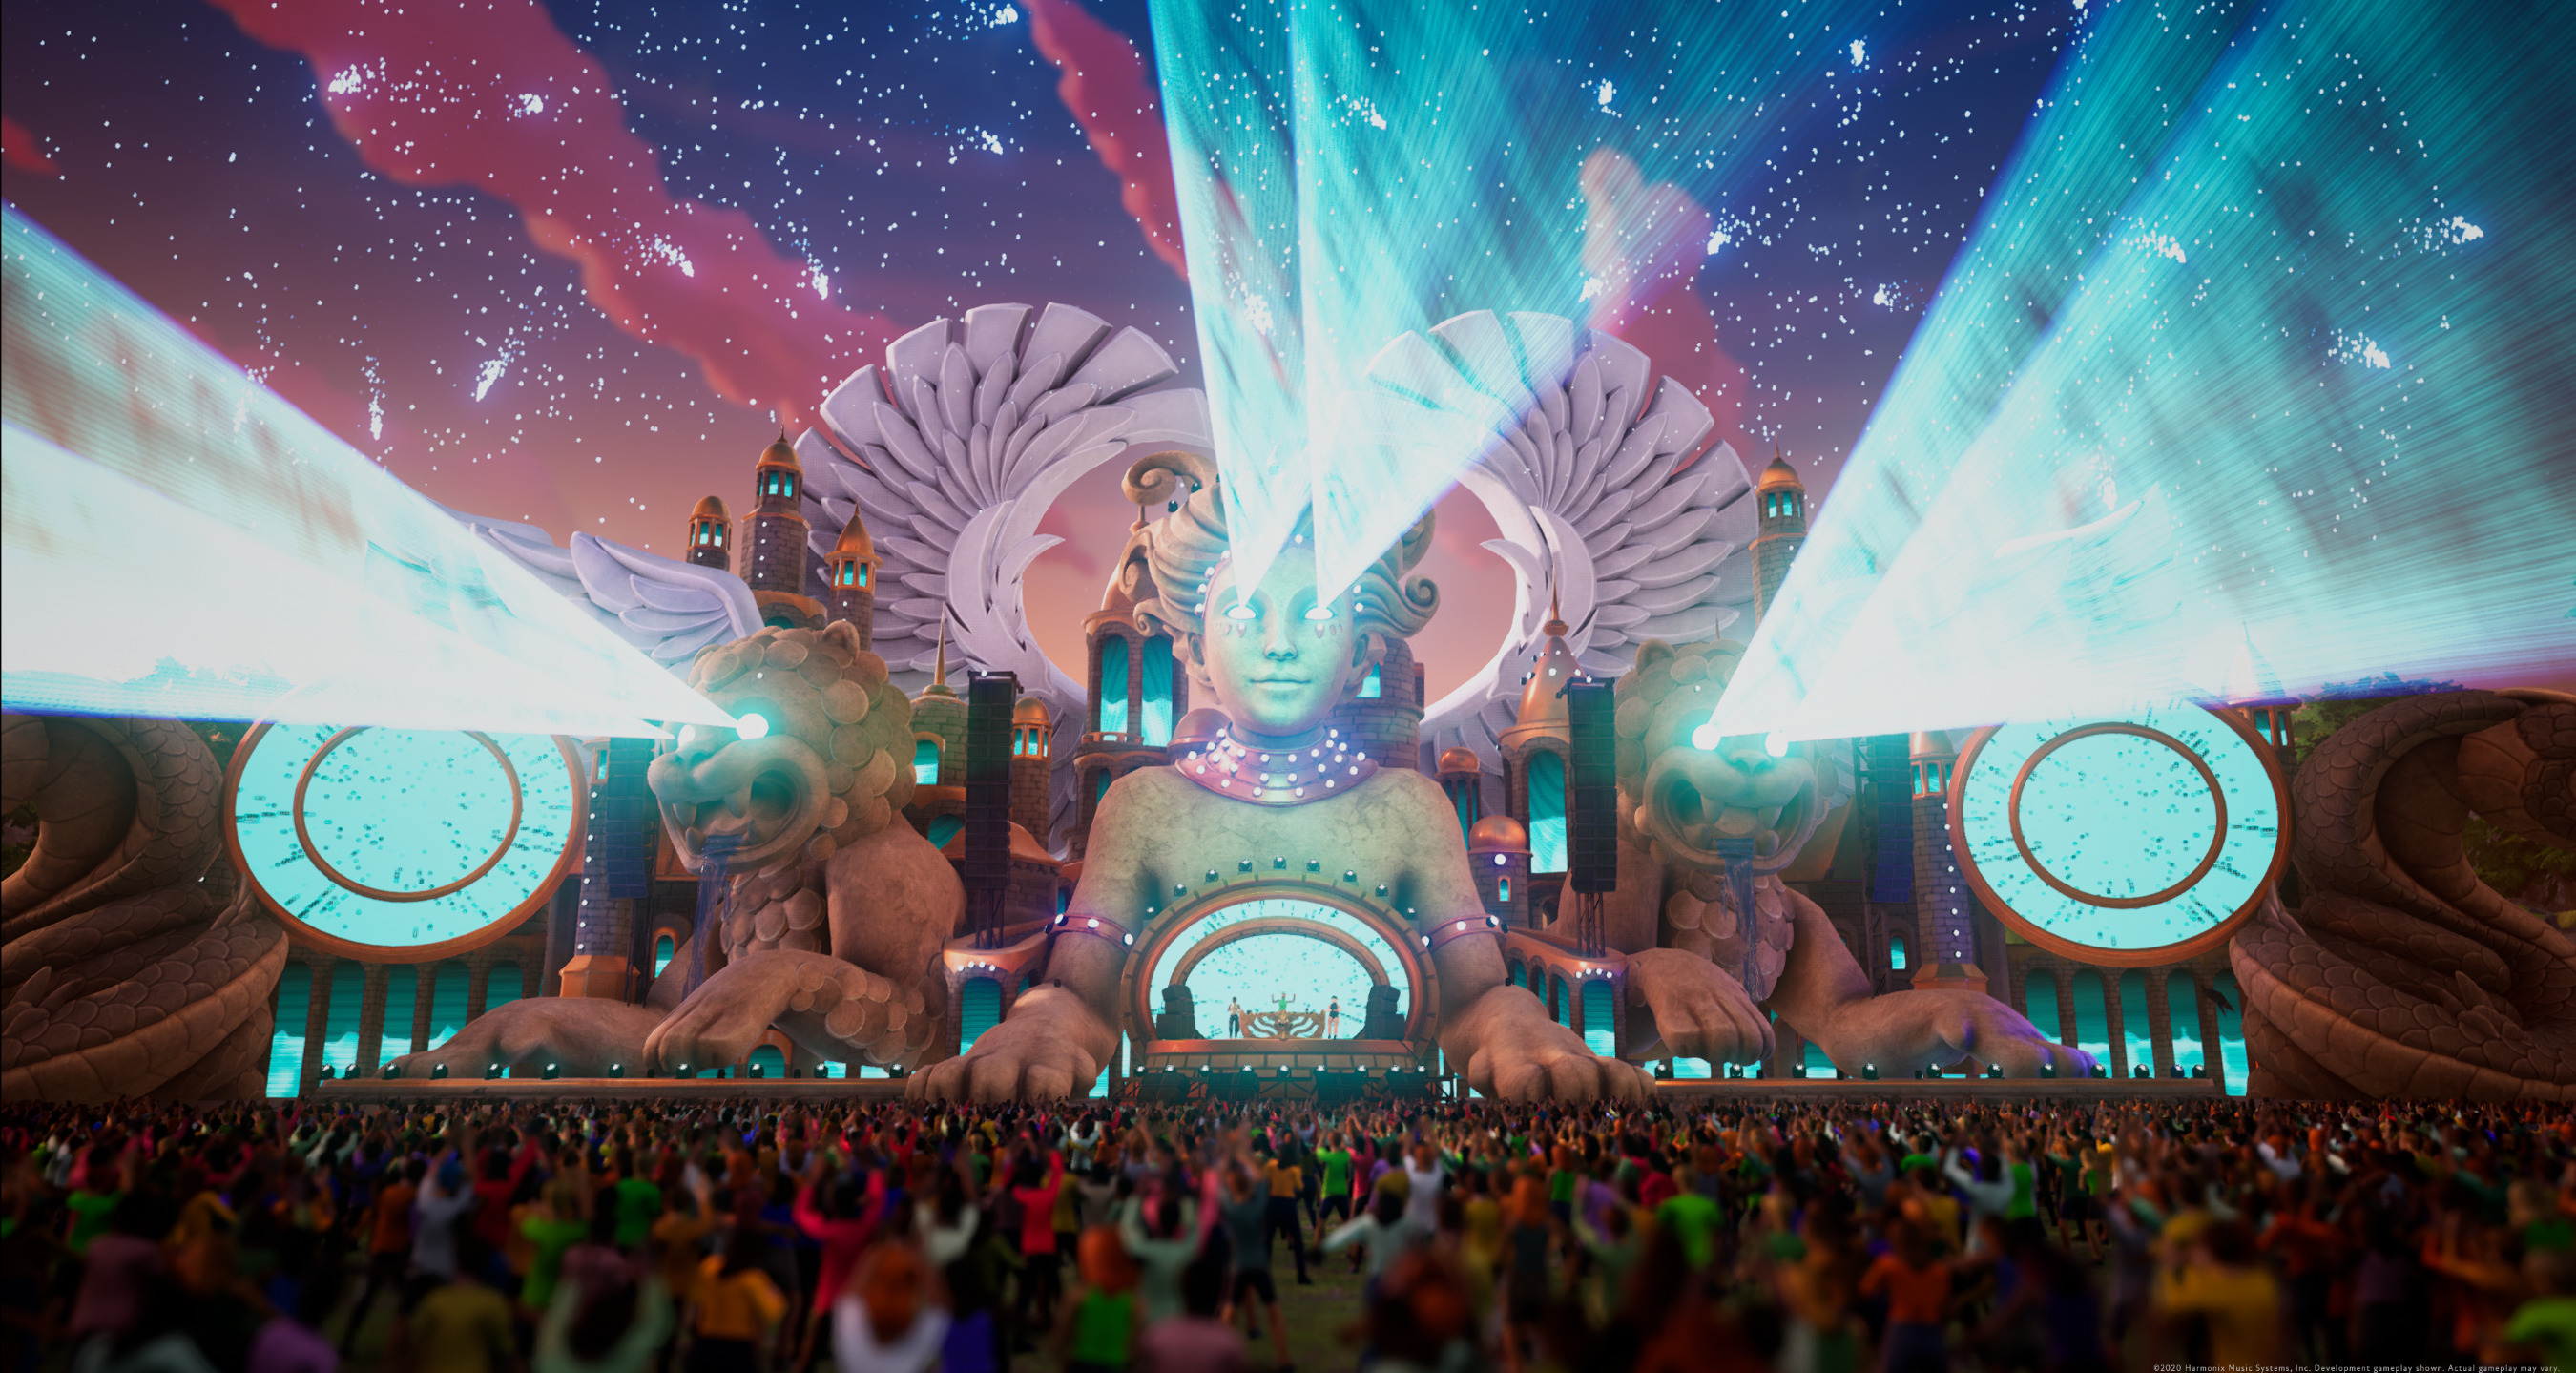 Live the fantasy of being a headlining DJ in front of a massive crowd - learn the ropes in the solo campaign, then show the world what you've got in freestyle and multiplayer modes.